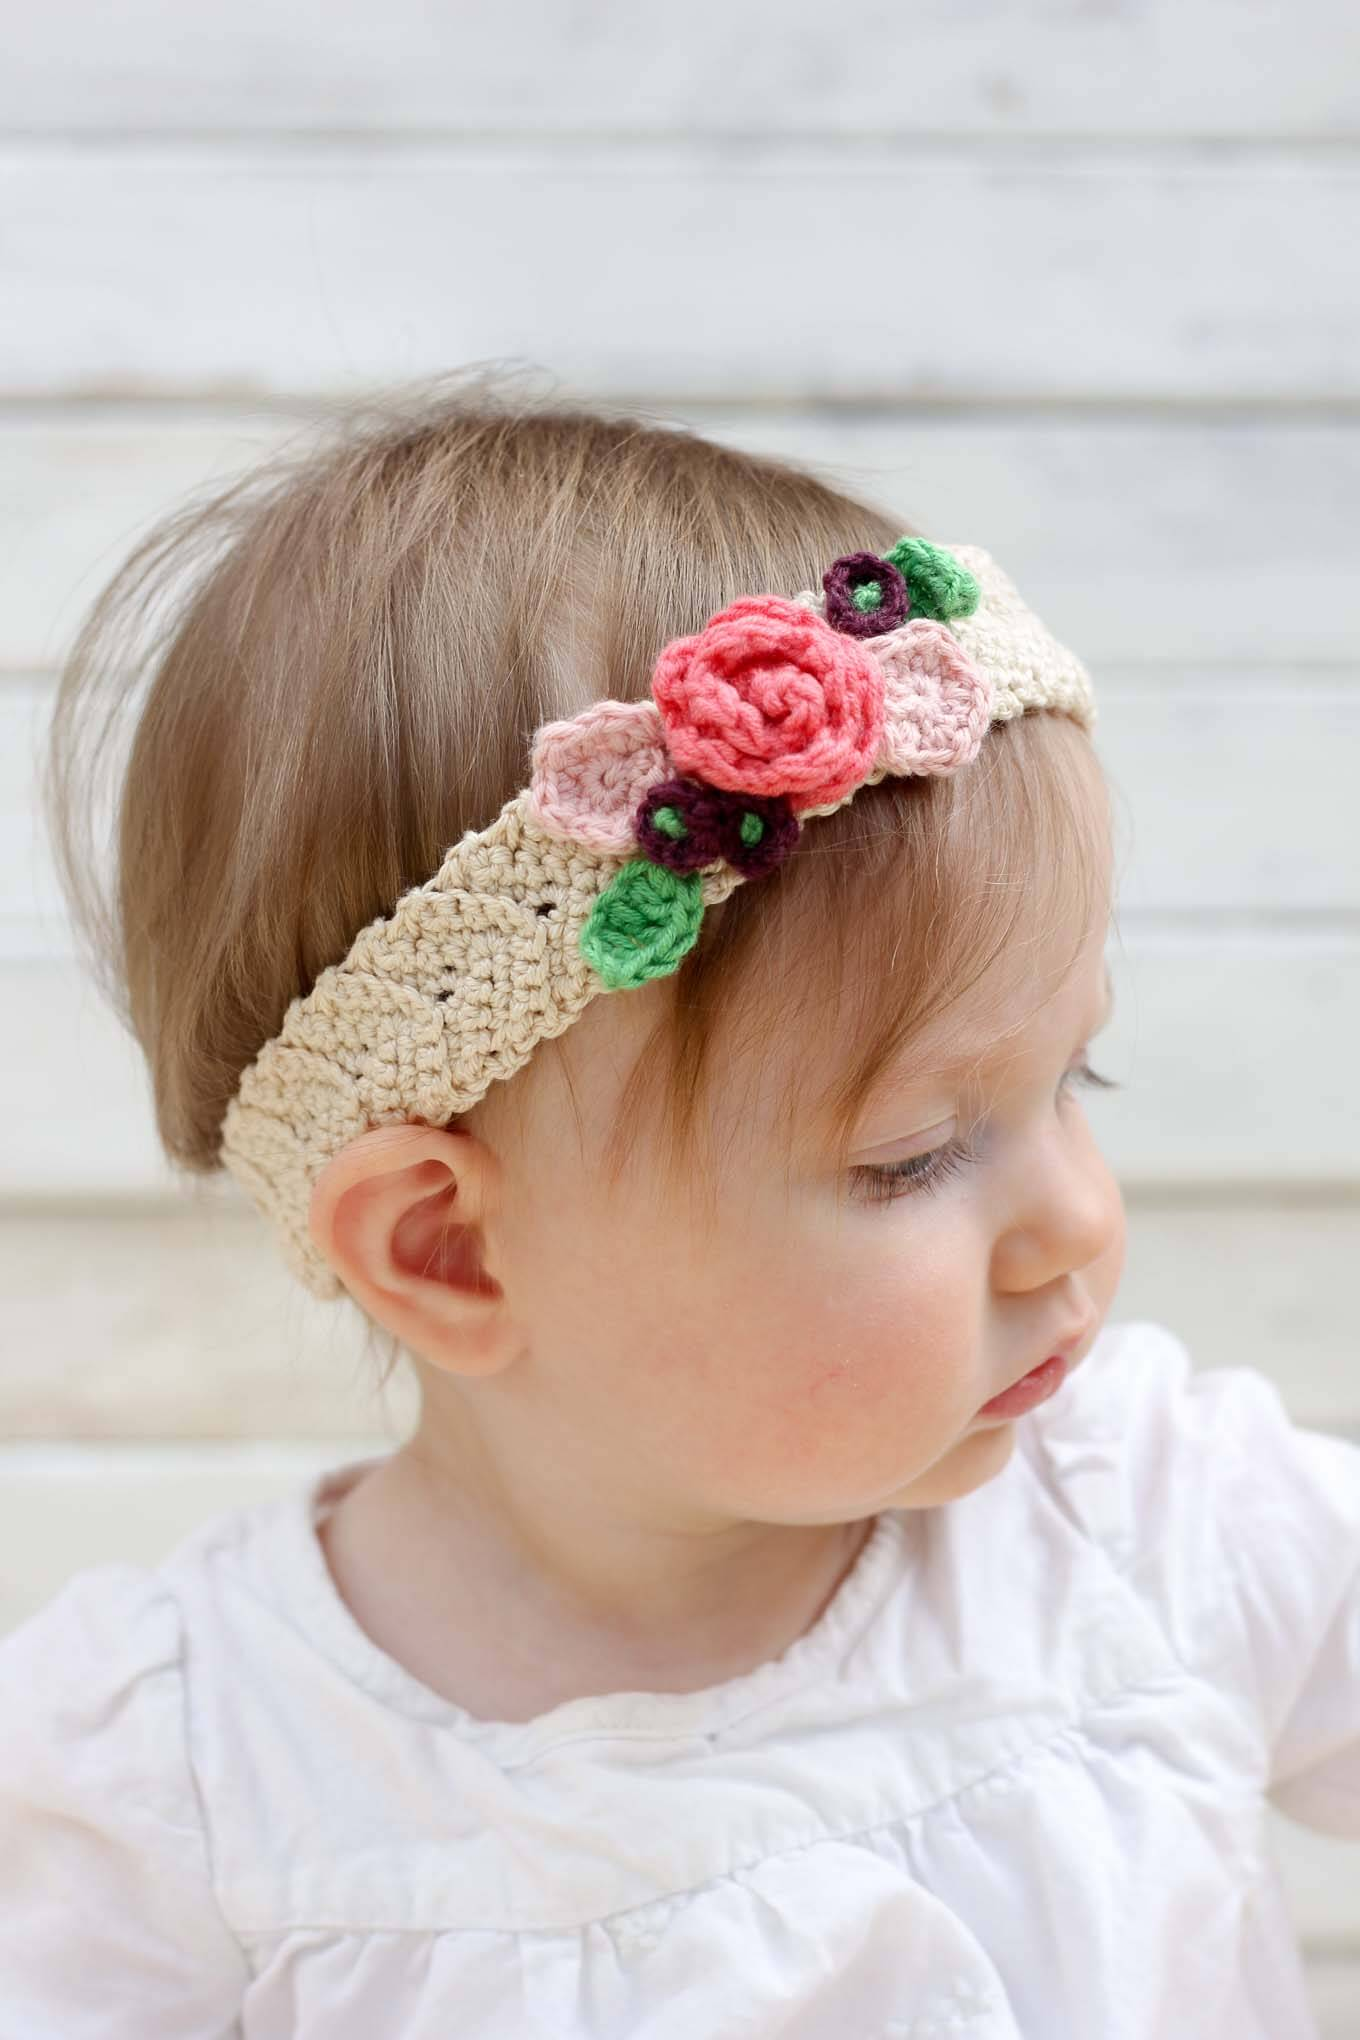 Crochet Headband Pattern For Baby With Flower : Free Crochet Flower Headband Pattern (Baby, Toddler, Adult)